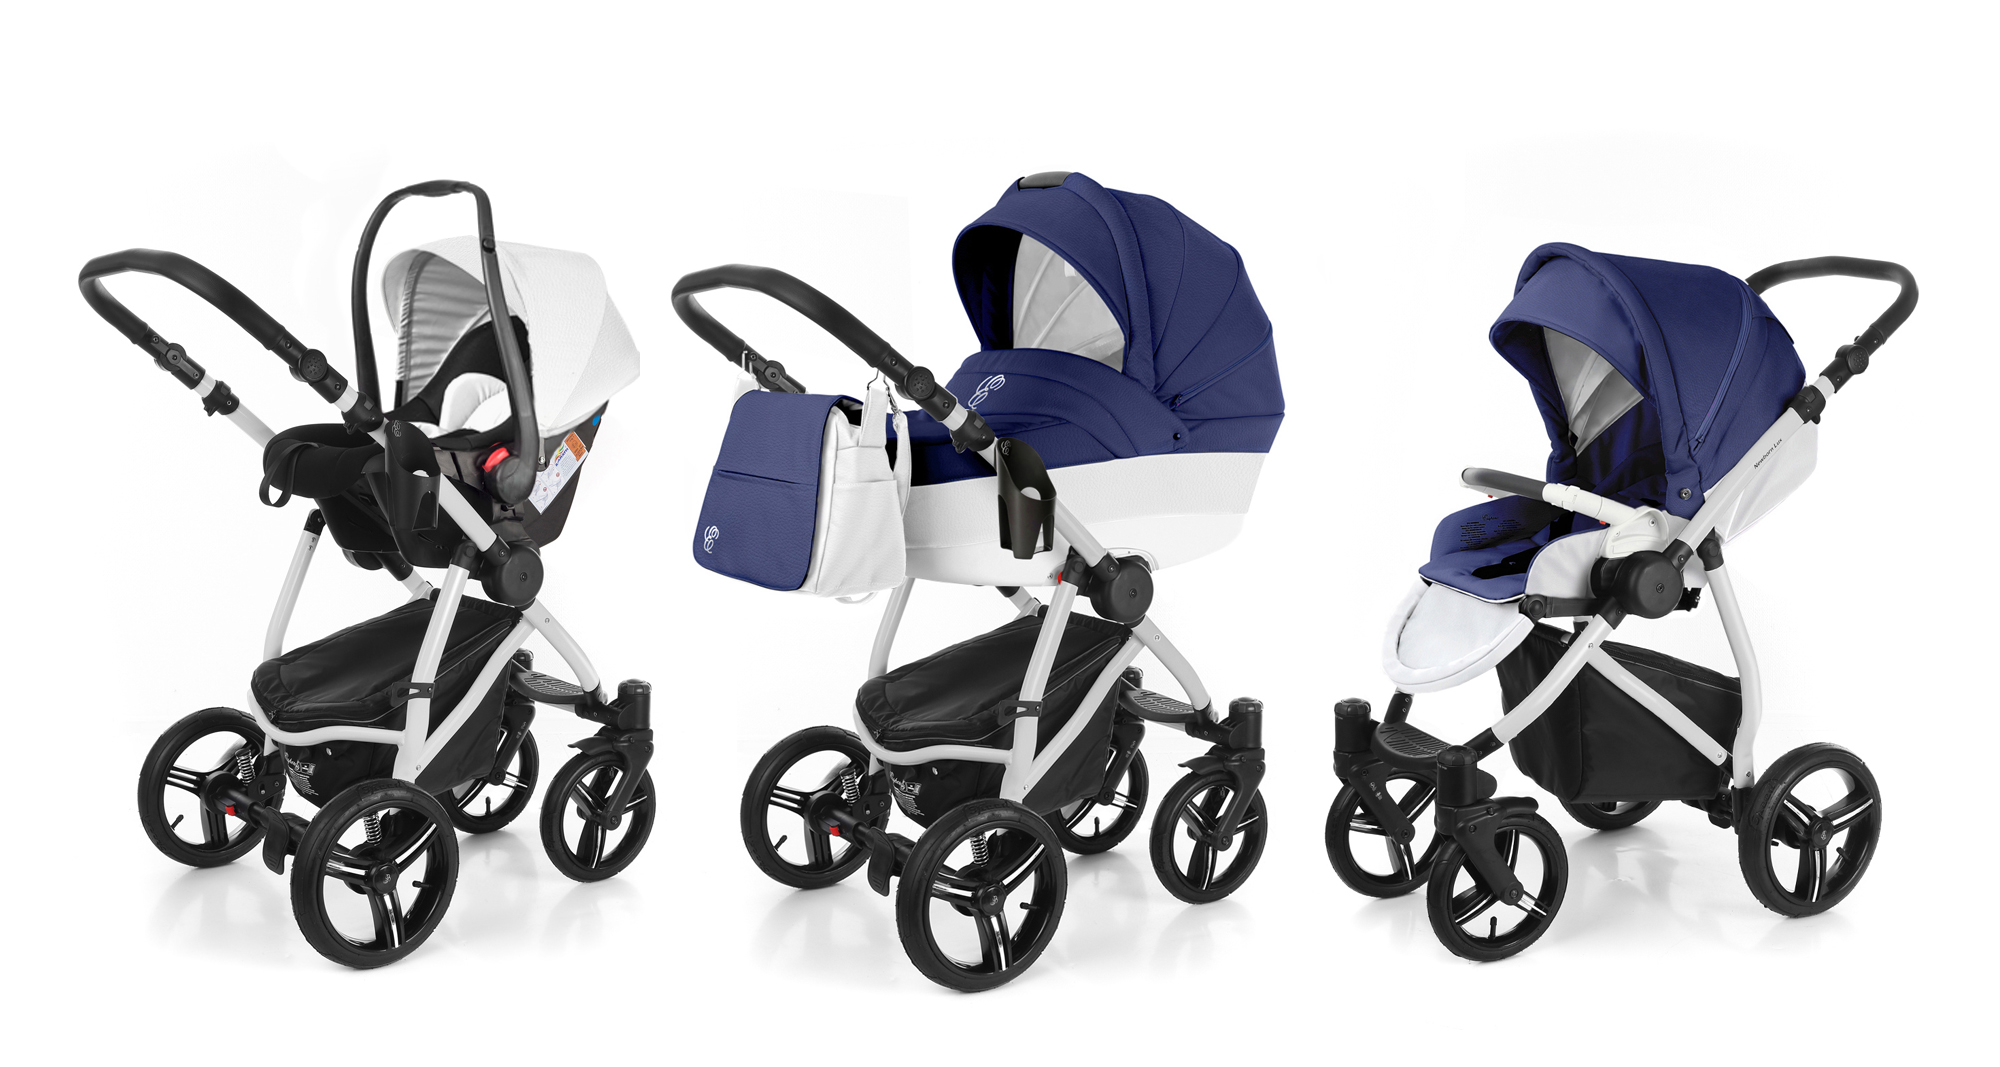 Коляска 3 в 1 Esspero Grand Newborn Lux (шасси Grey). Фото N4